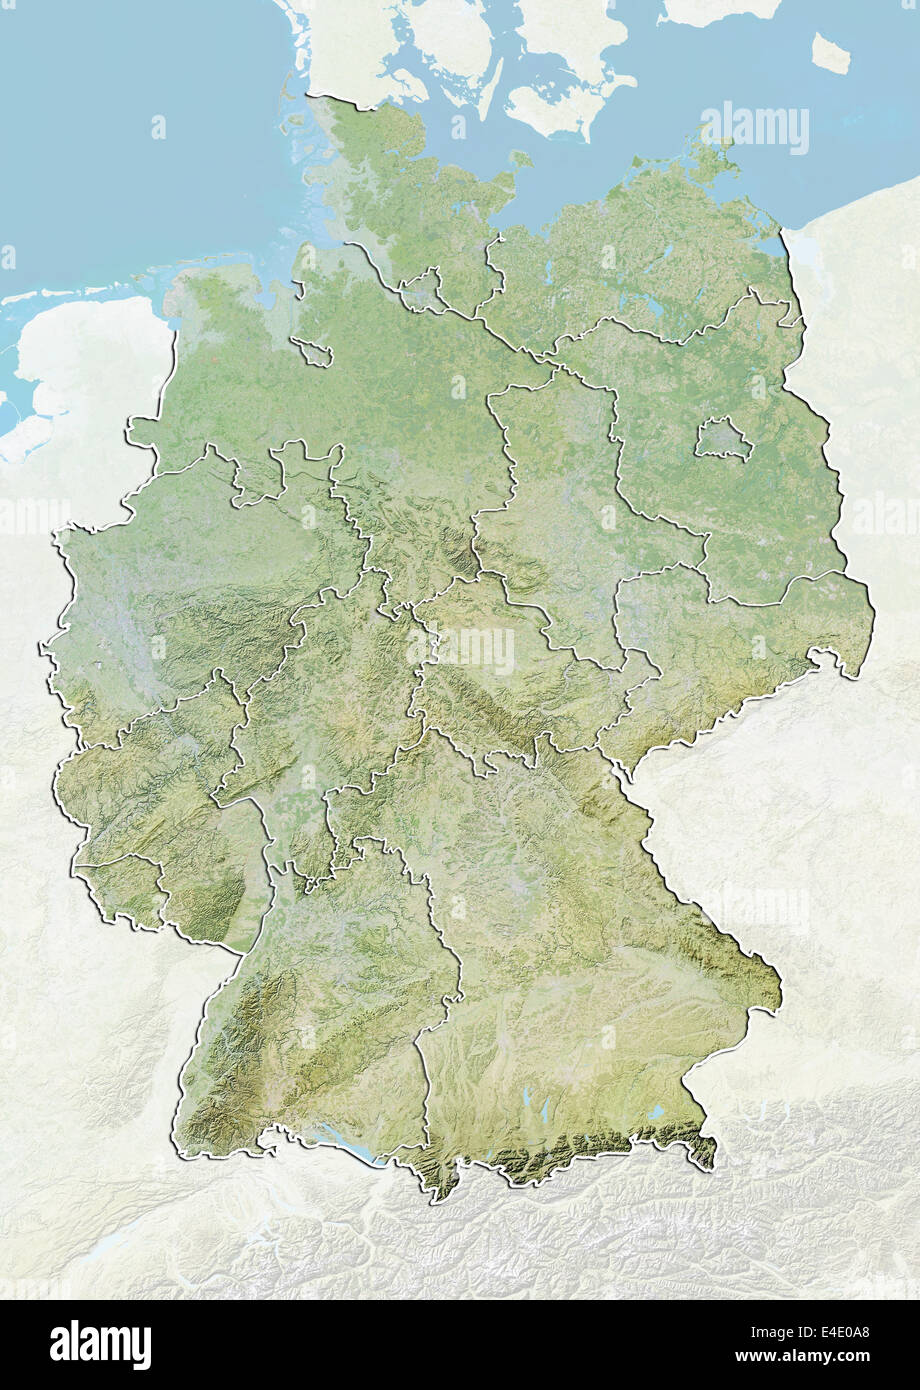 Germany, Relief Map With Boundaries of States Stock Photo